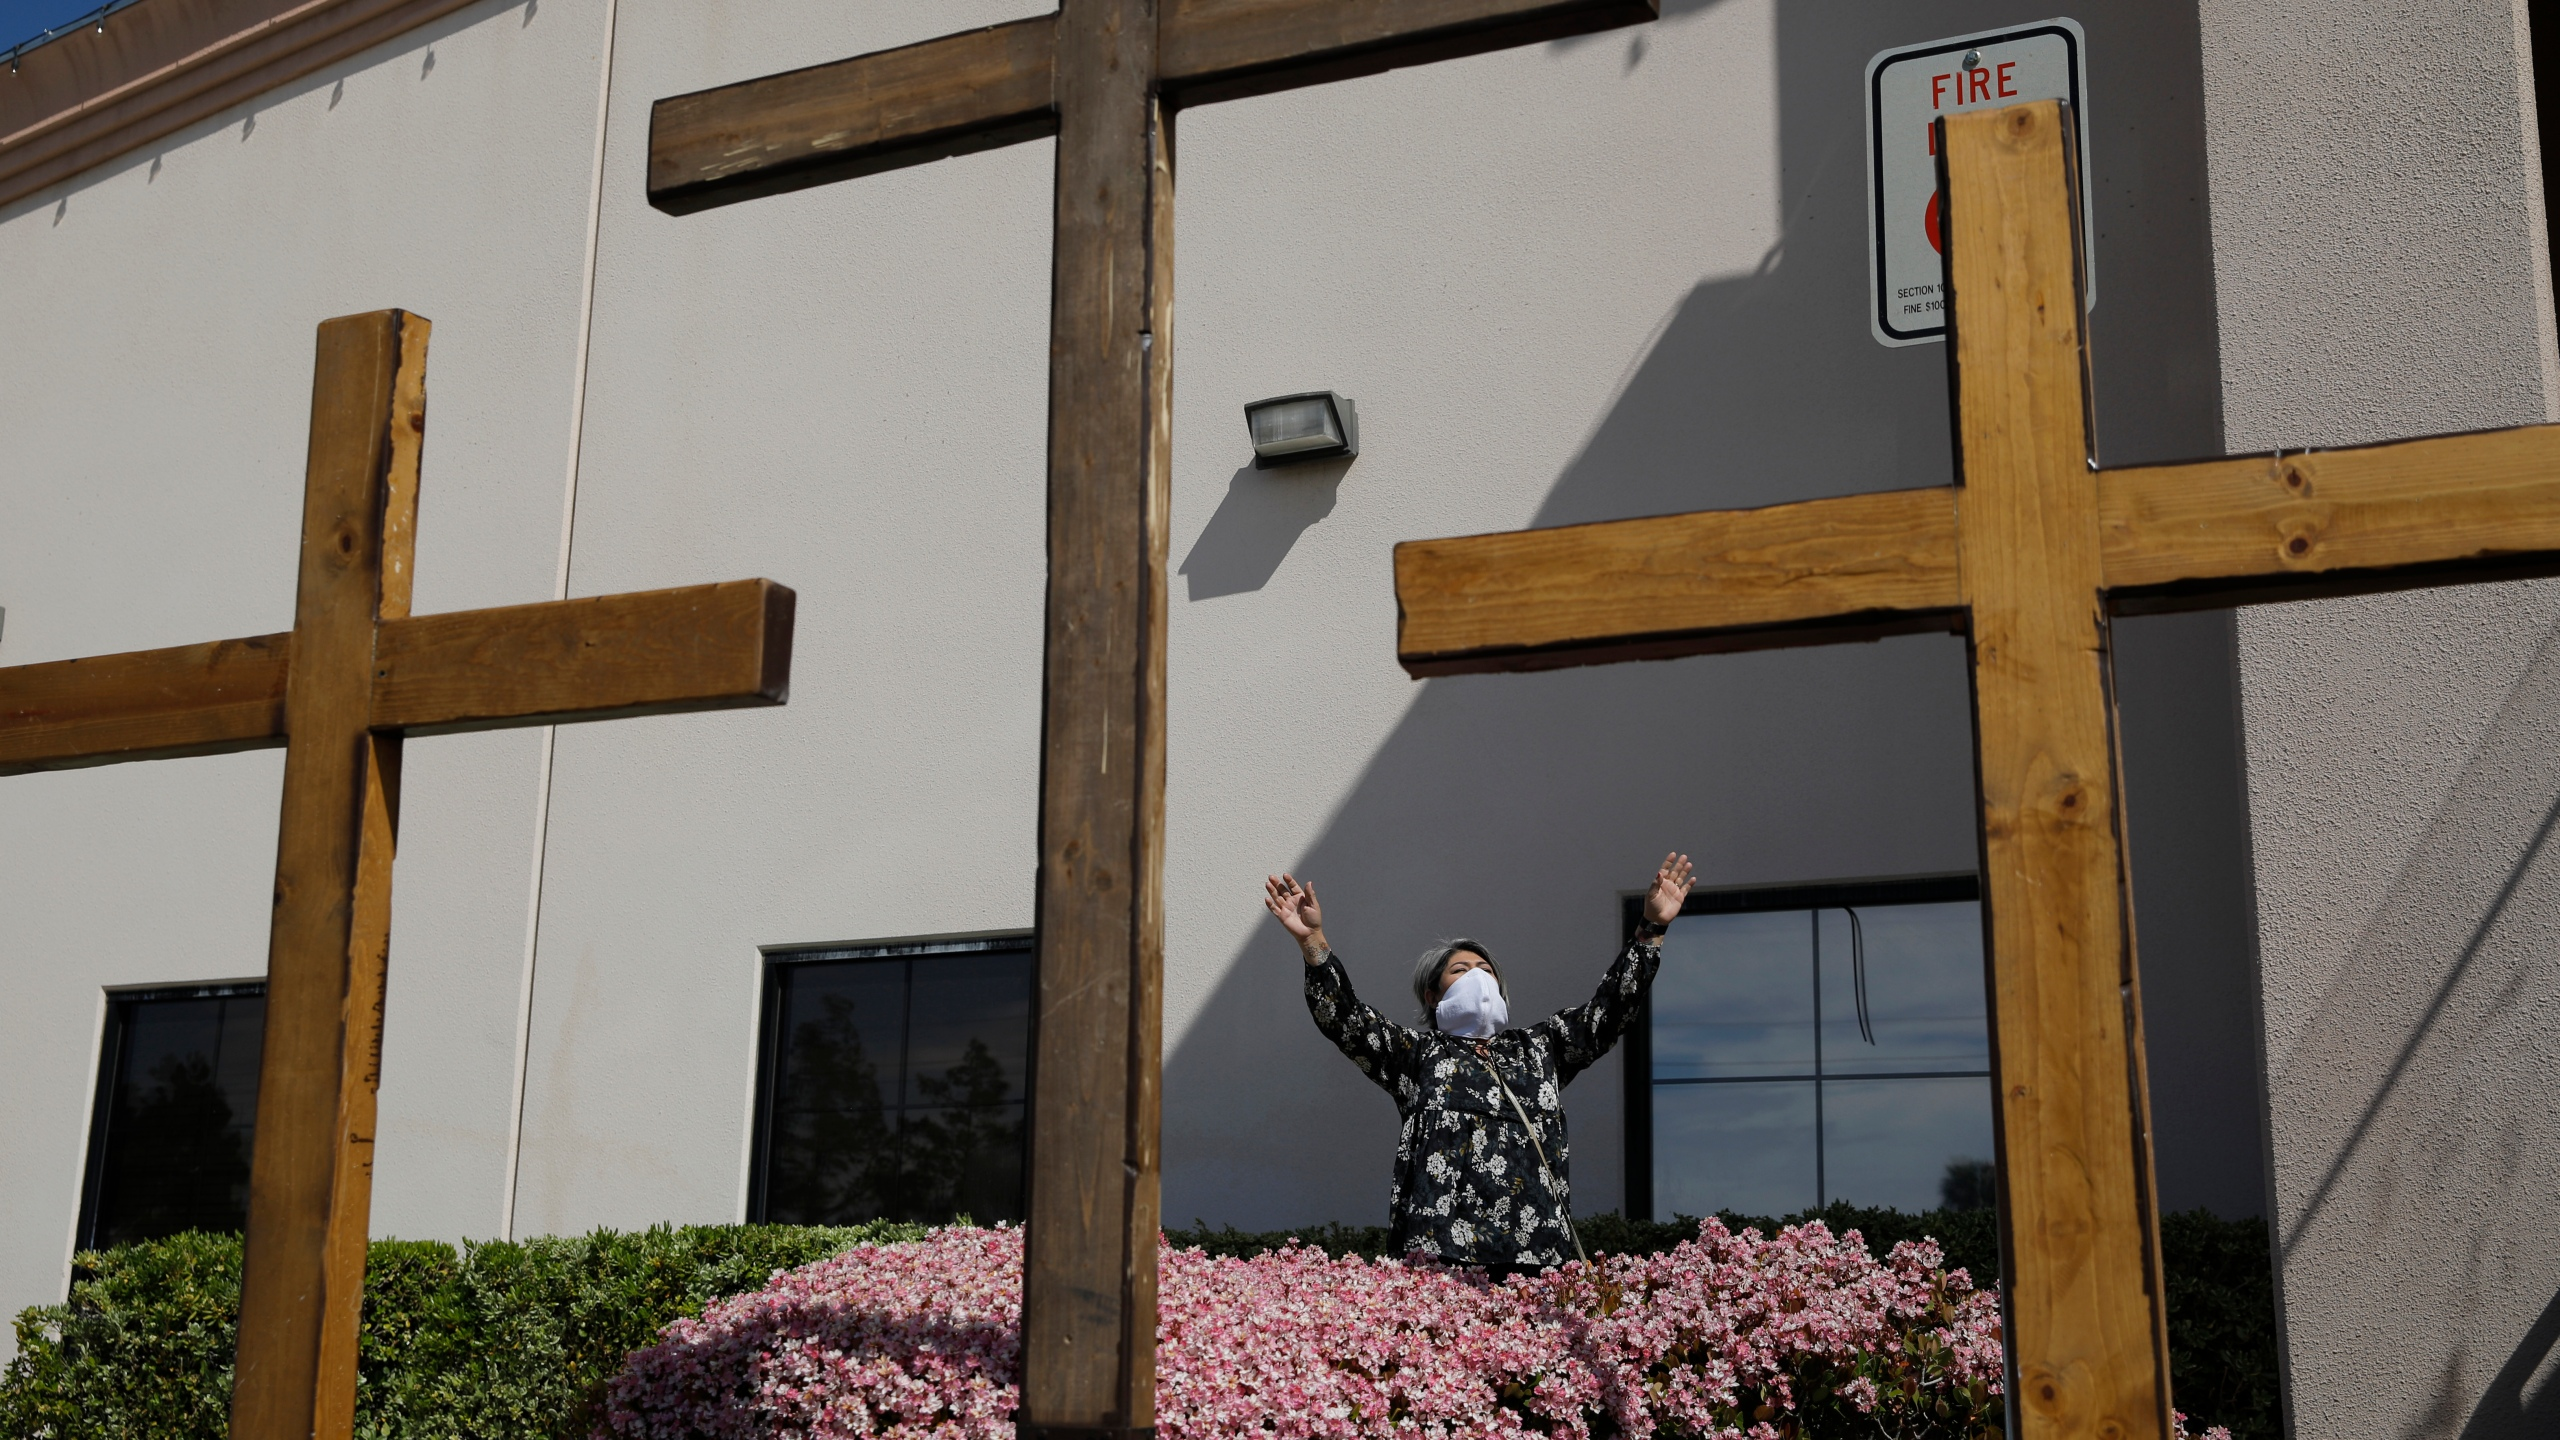 Churches offer healing during pandemic, protests